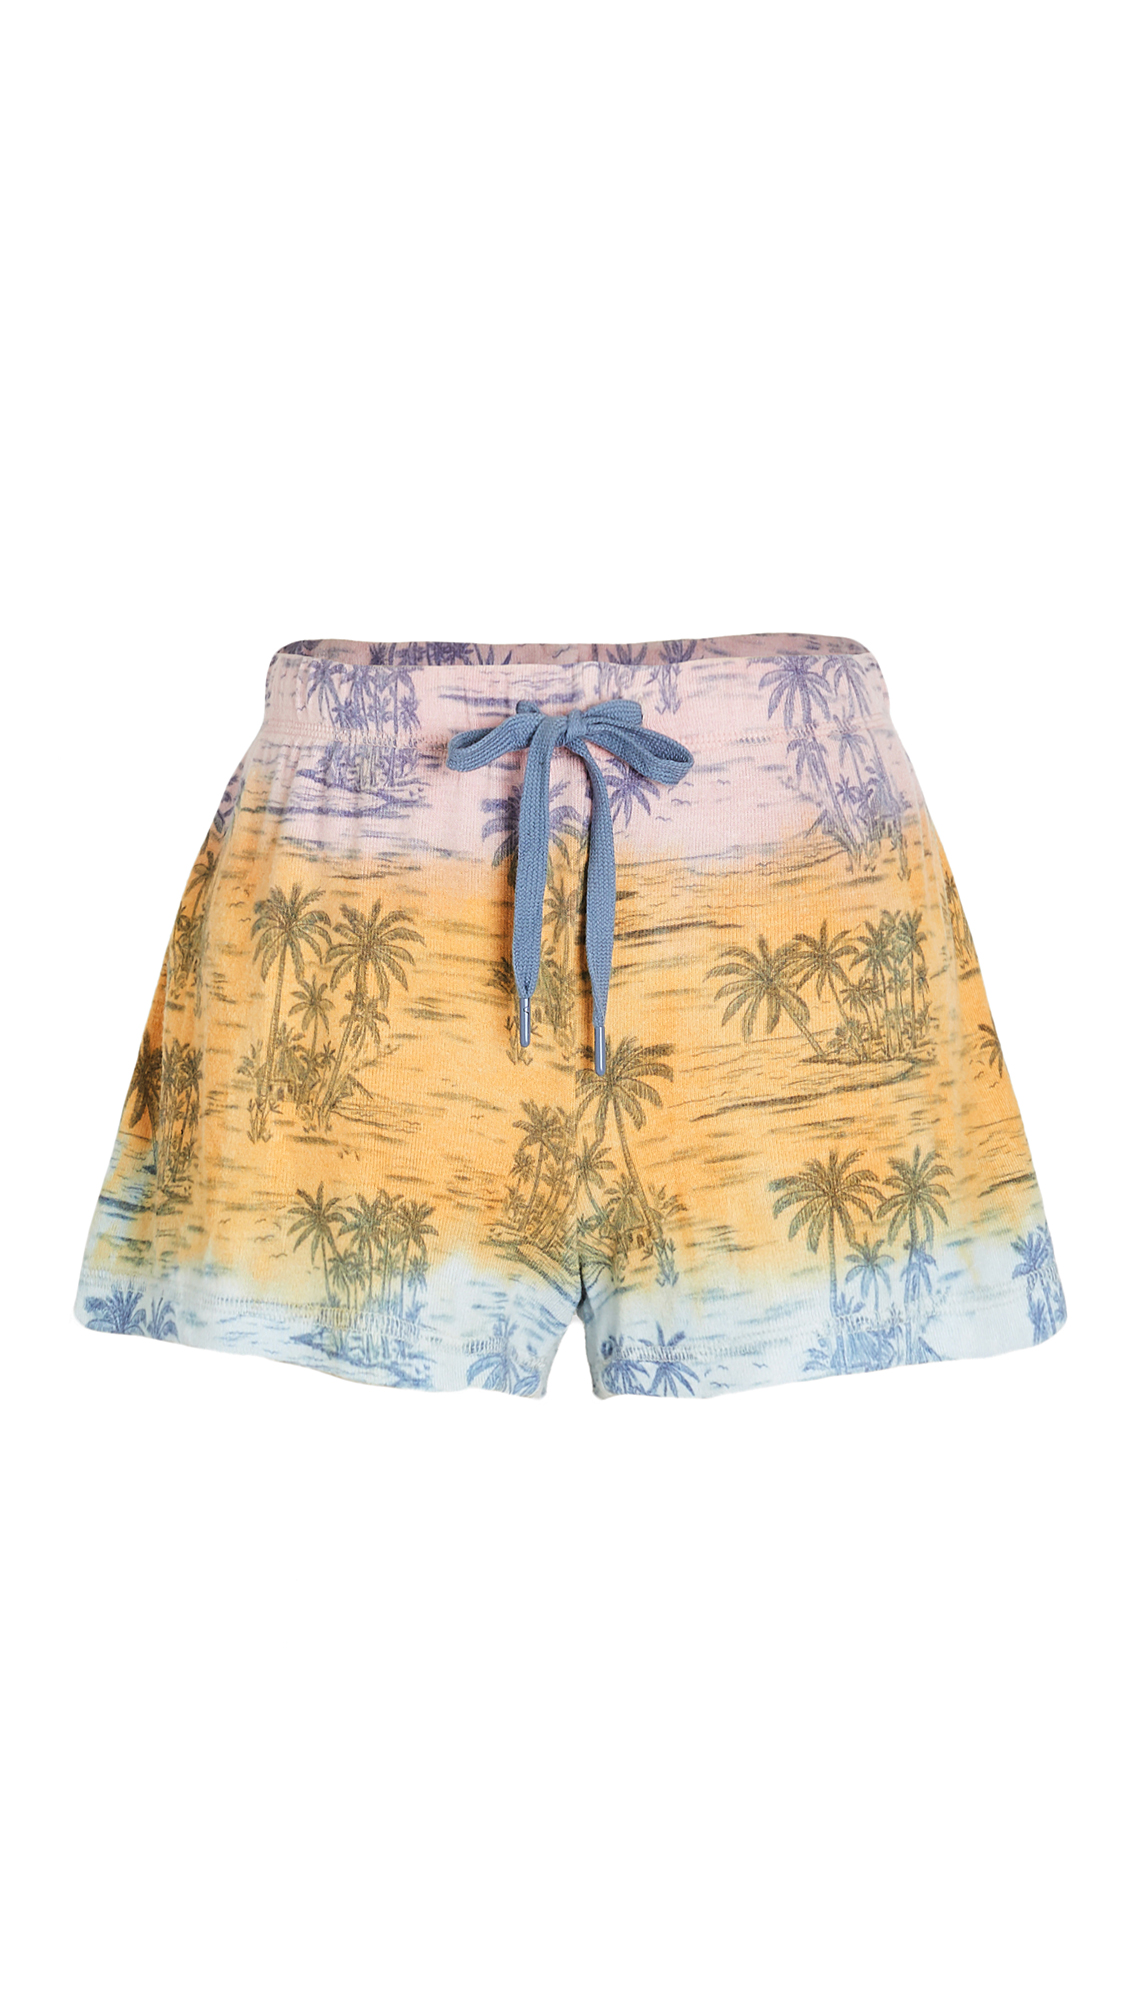 Pigment Please PJ Shorts